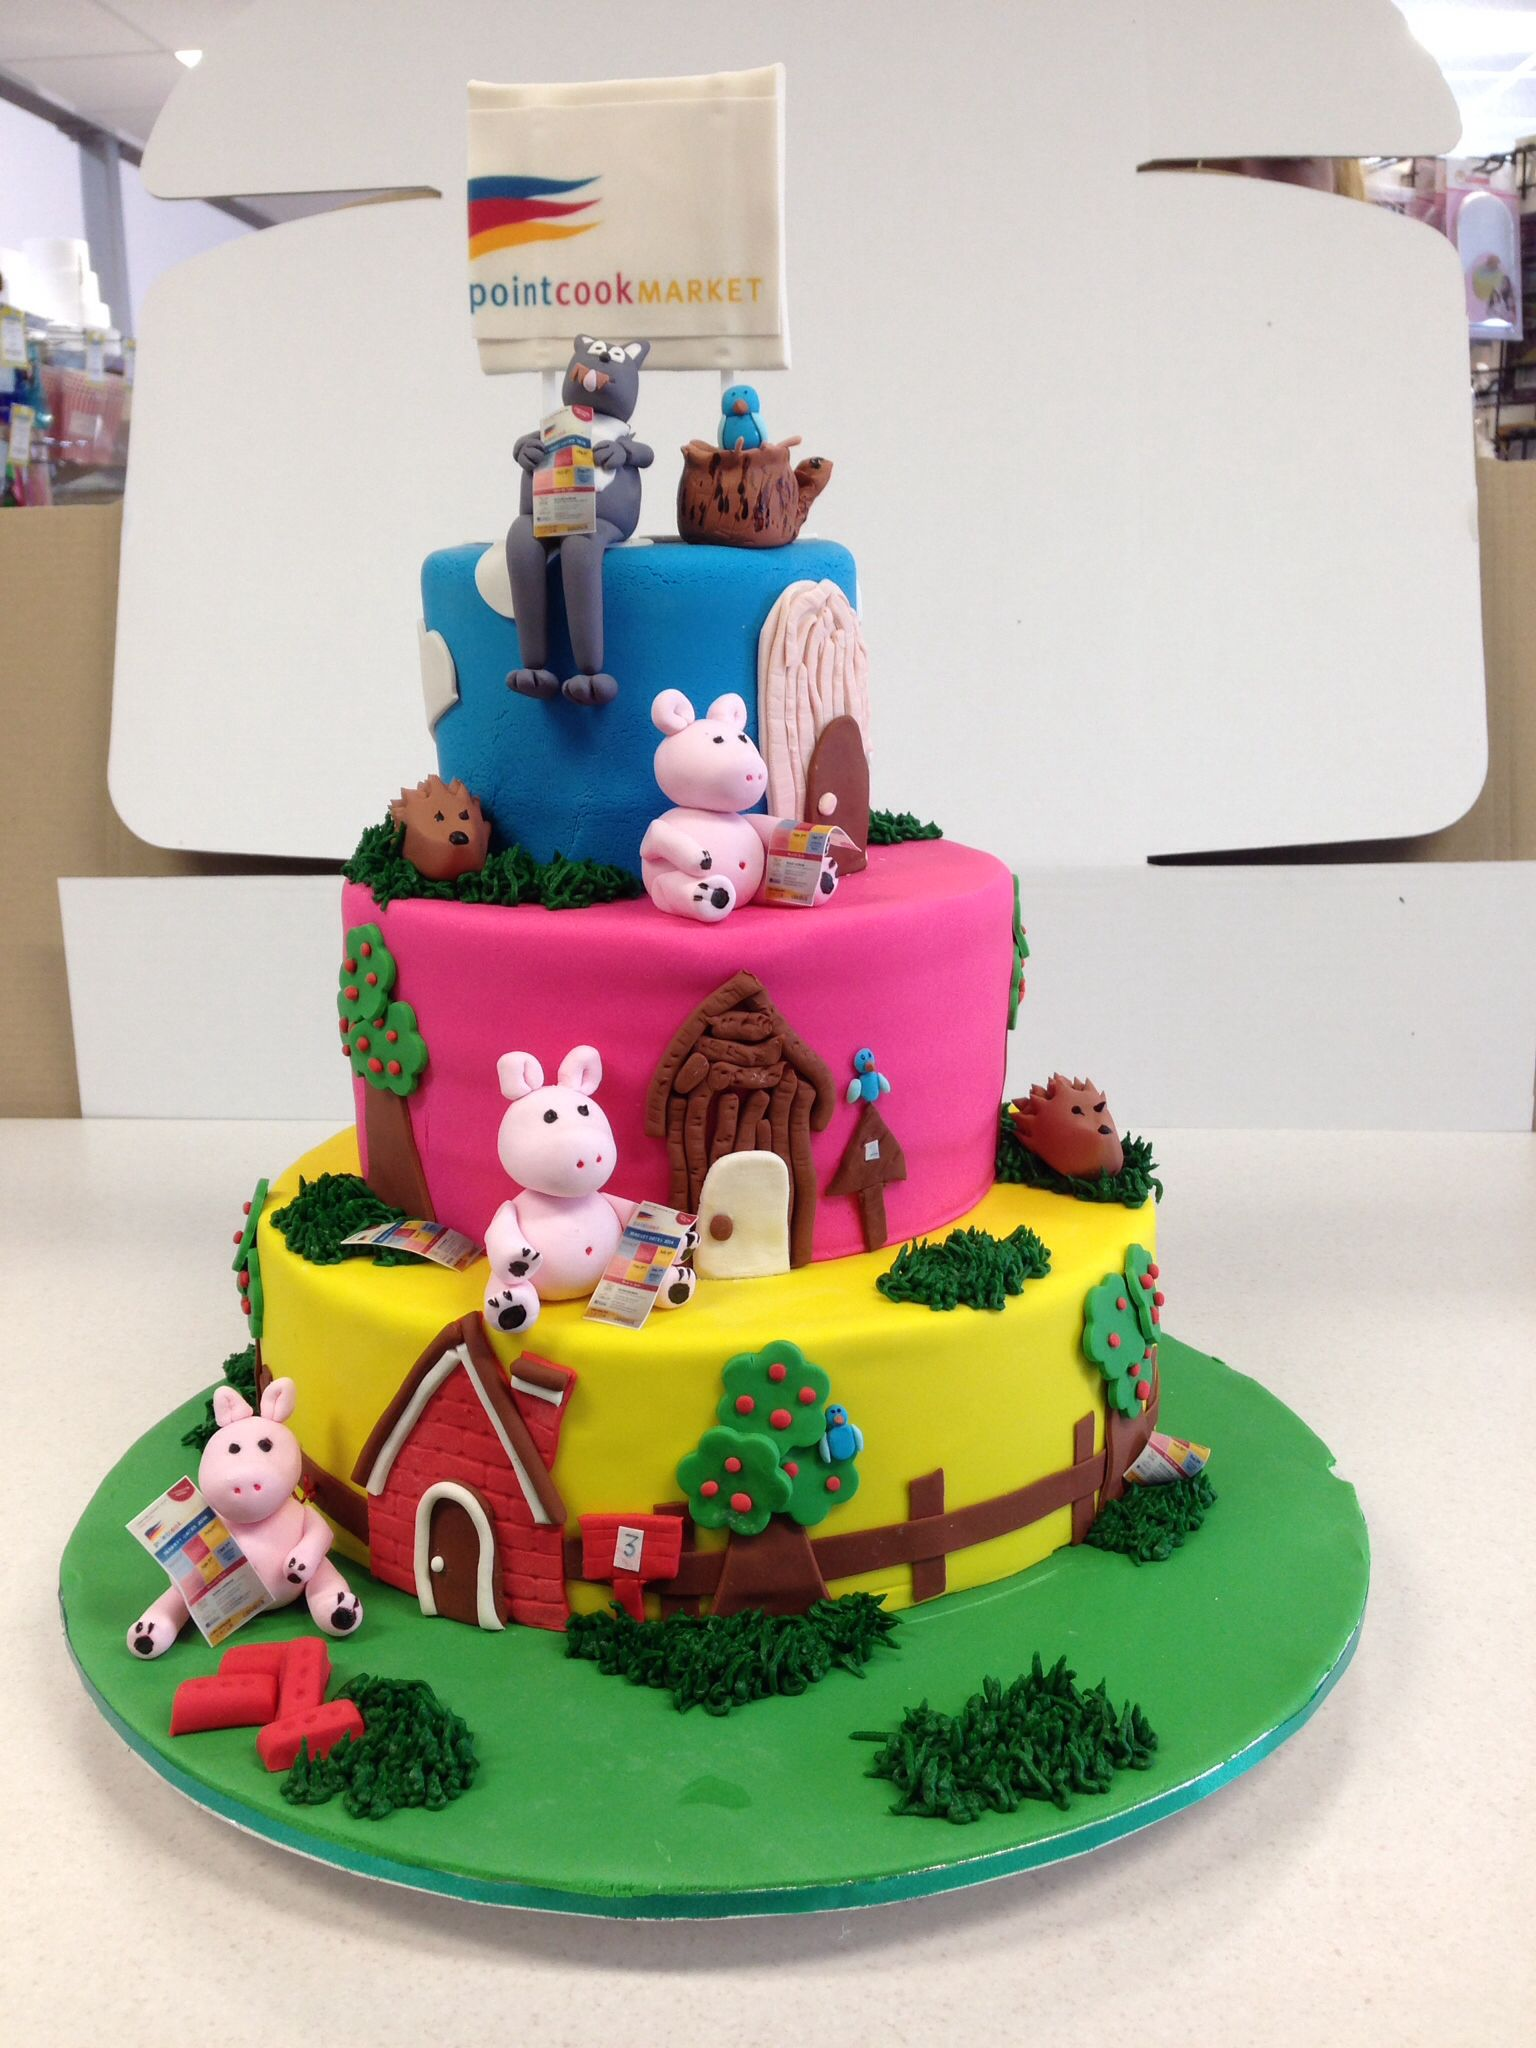 3 little pigs 3 tier cake. Made by the team at Let's Celebrate Parties for Point Cook Market.